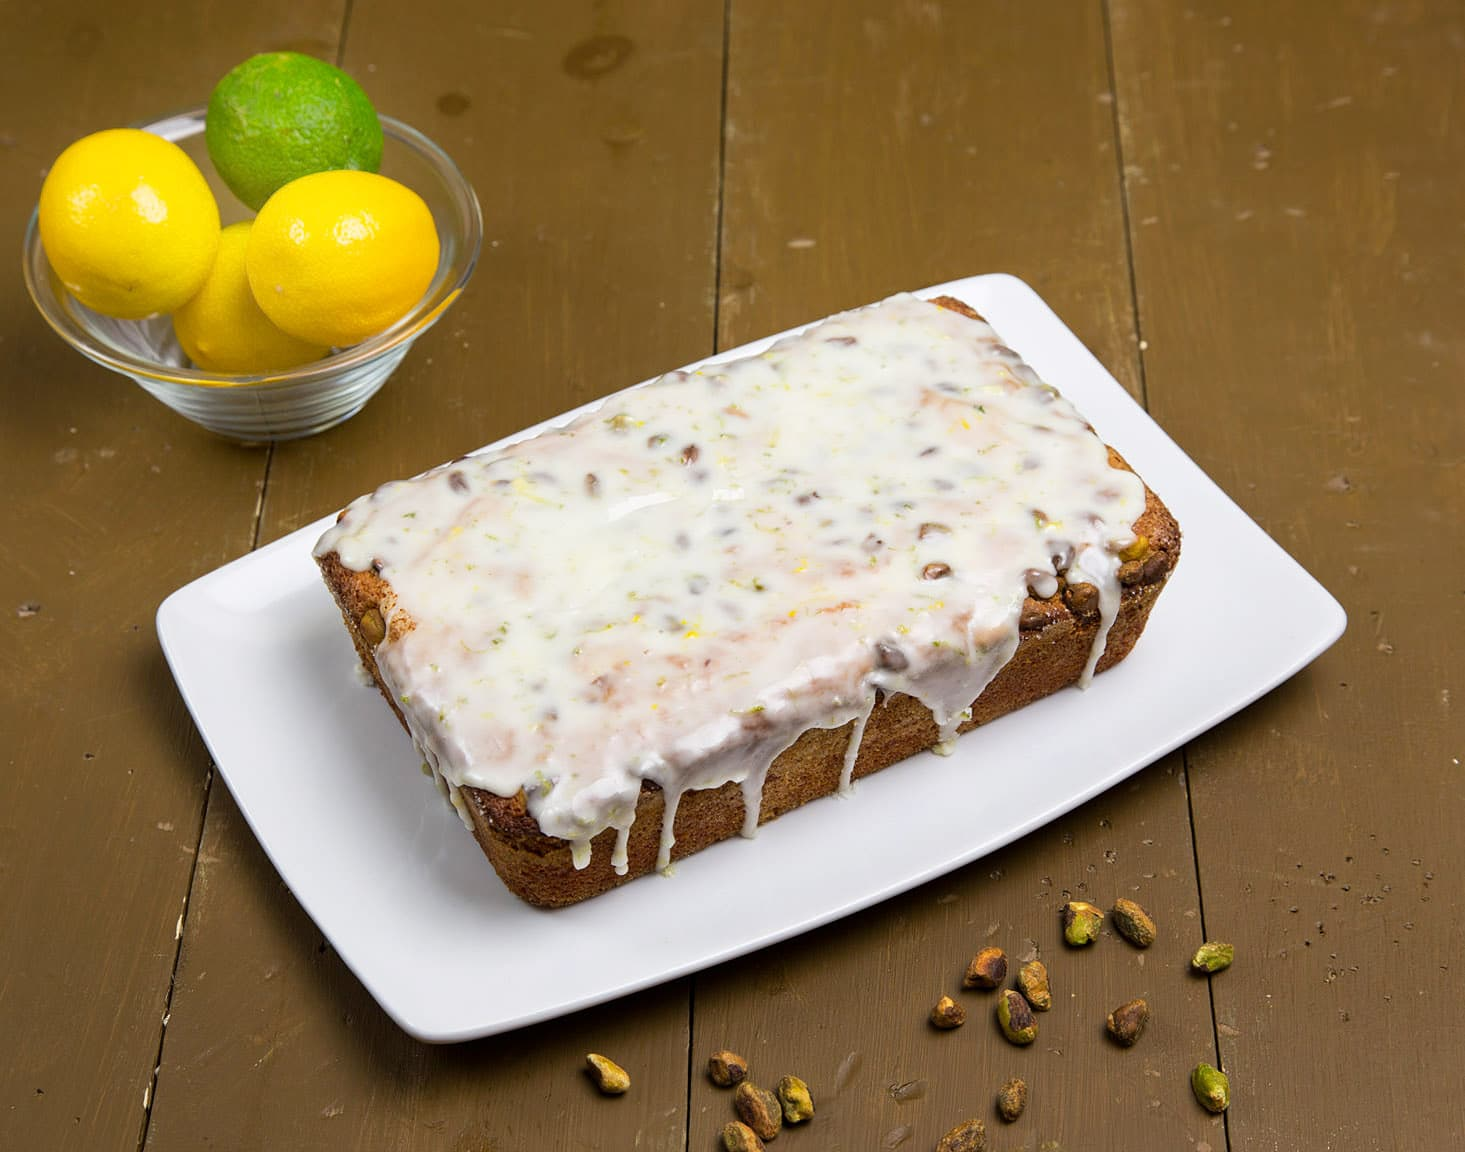 Trisha Yearwood Lemon Pound Cake